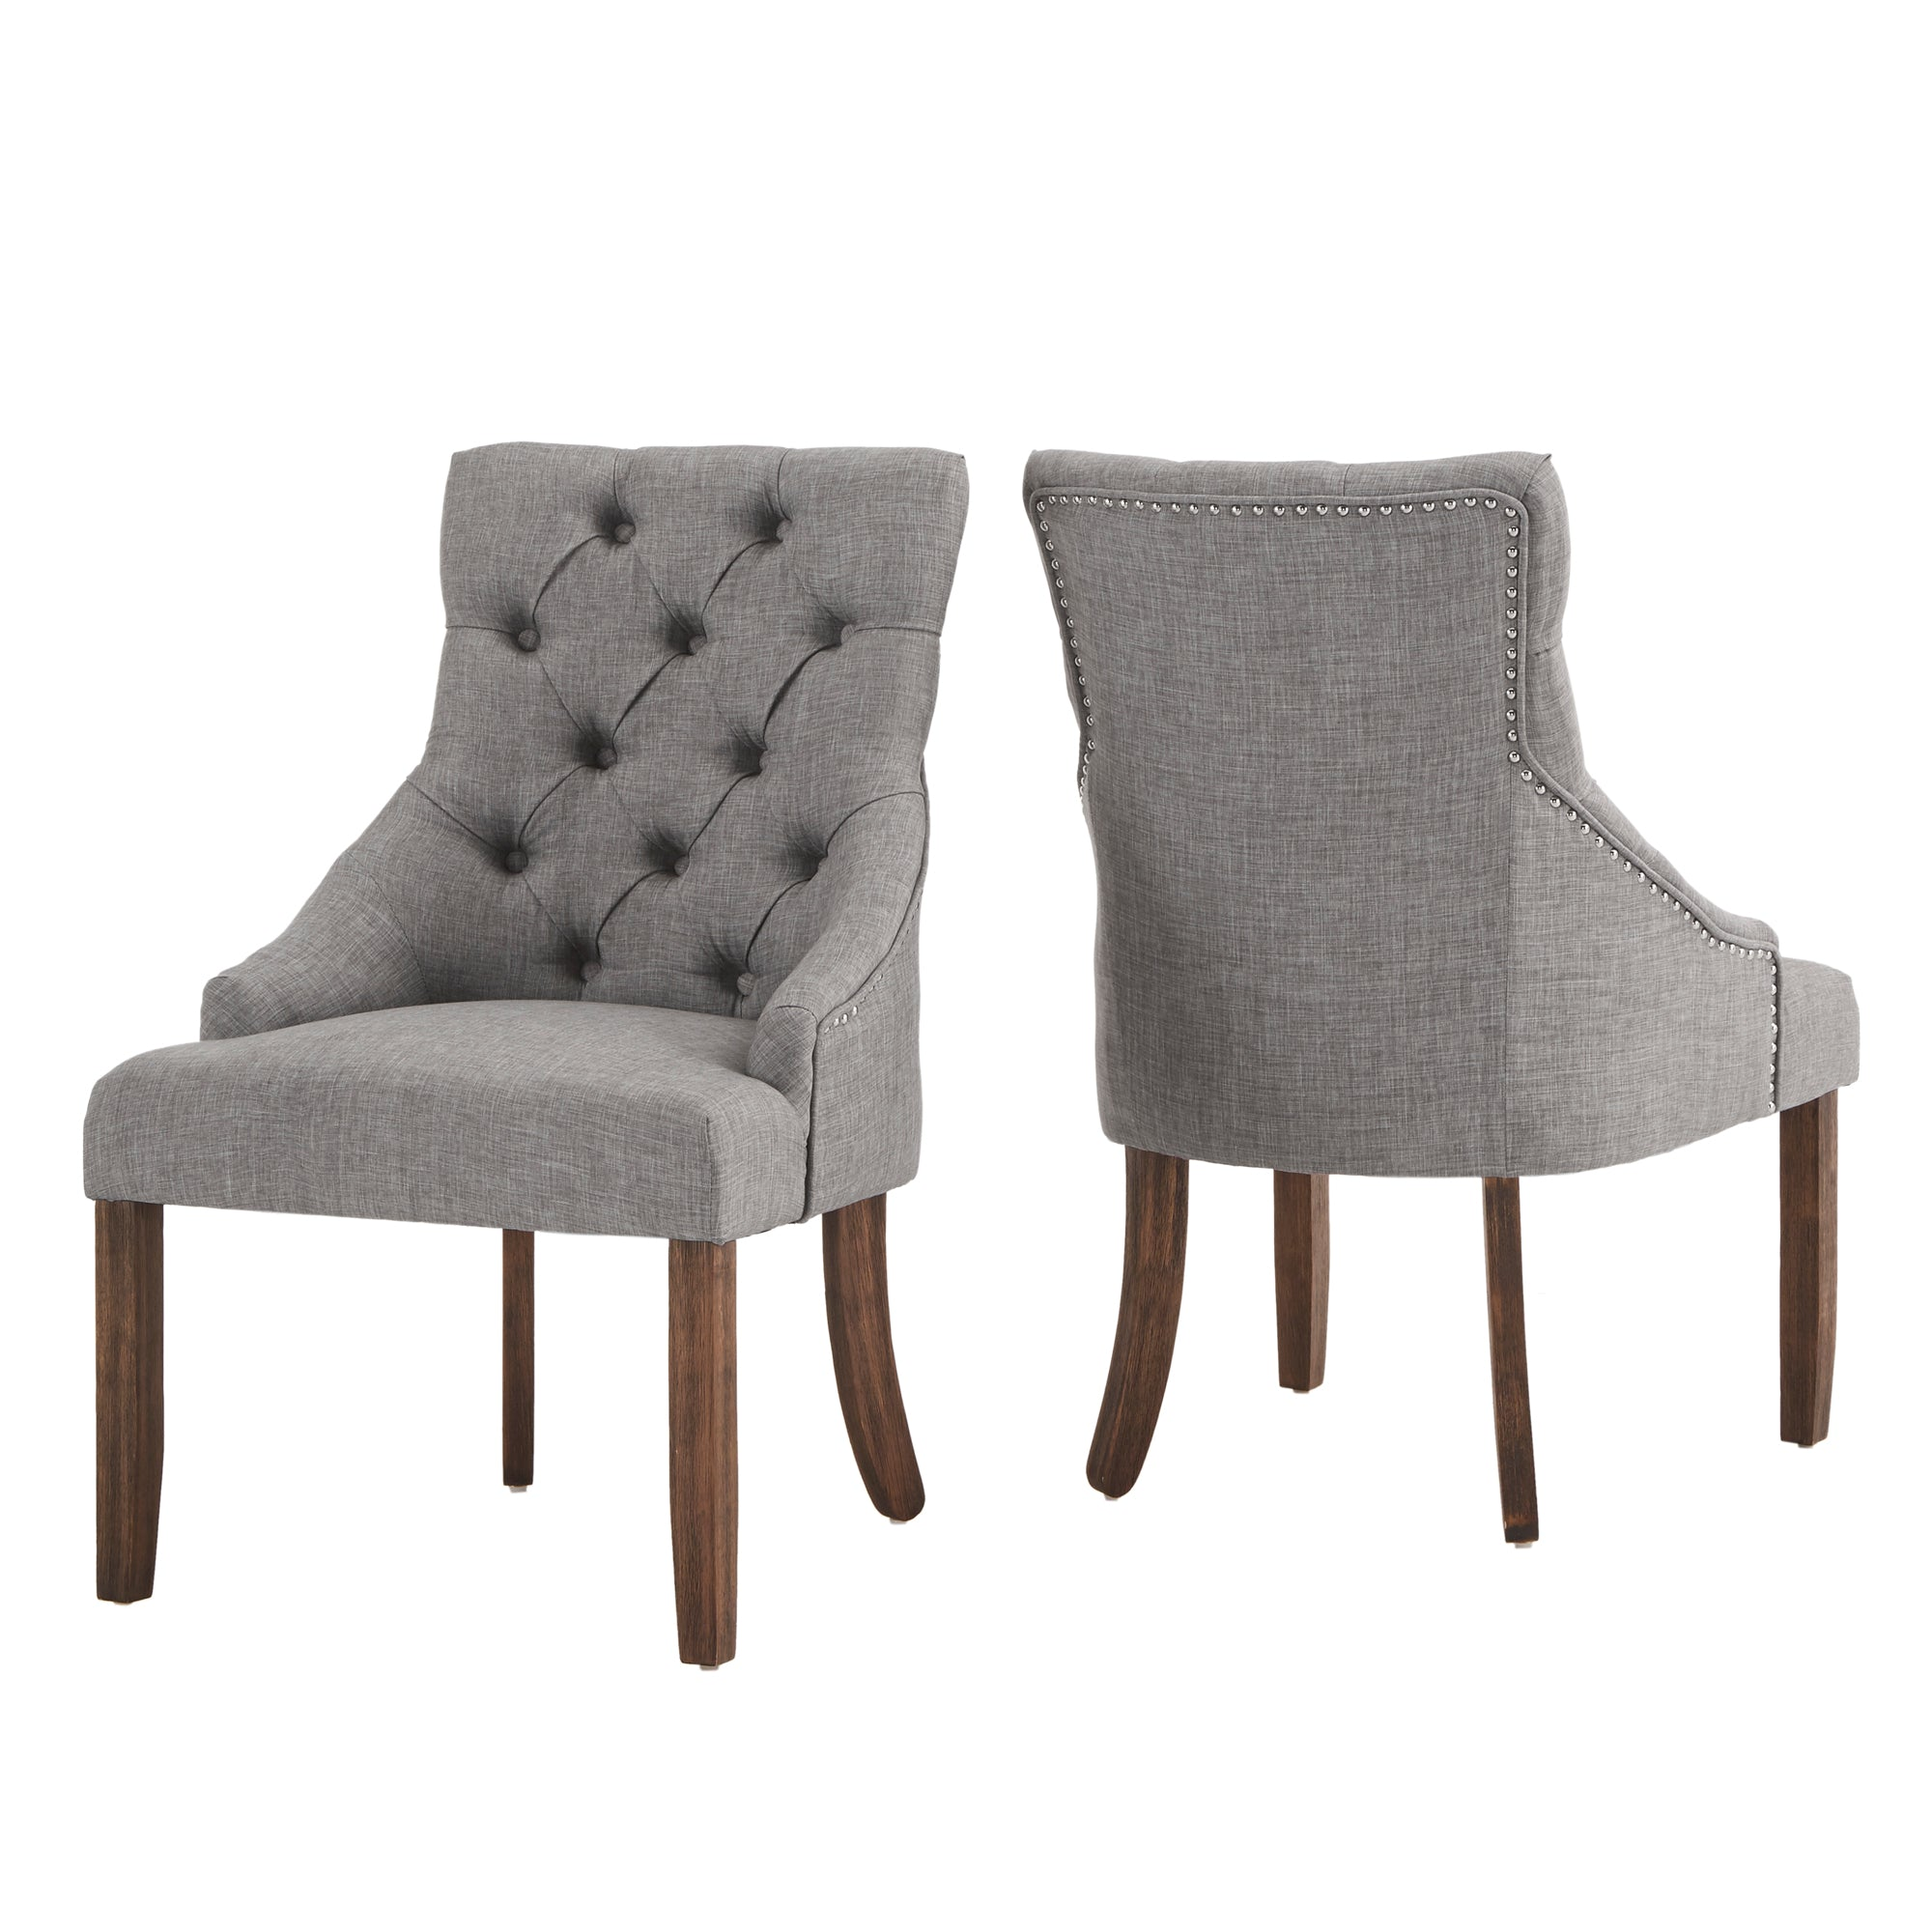 Light Grey Linen Curved Back Tufted Dining Chair (Set of Two)